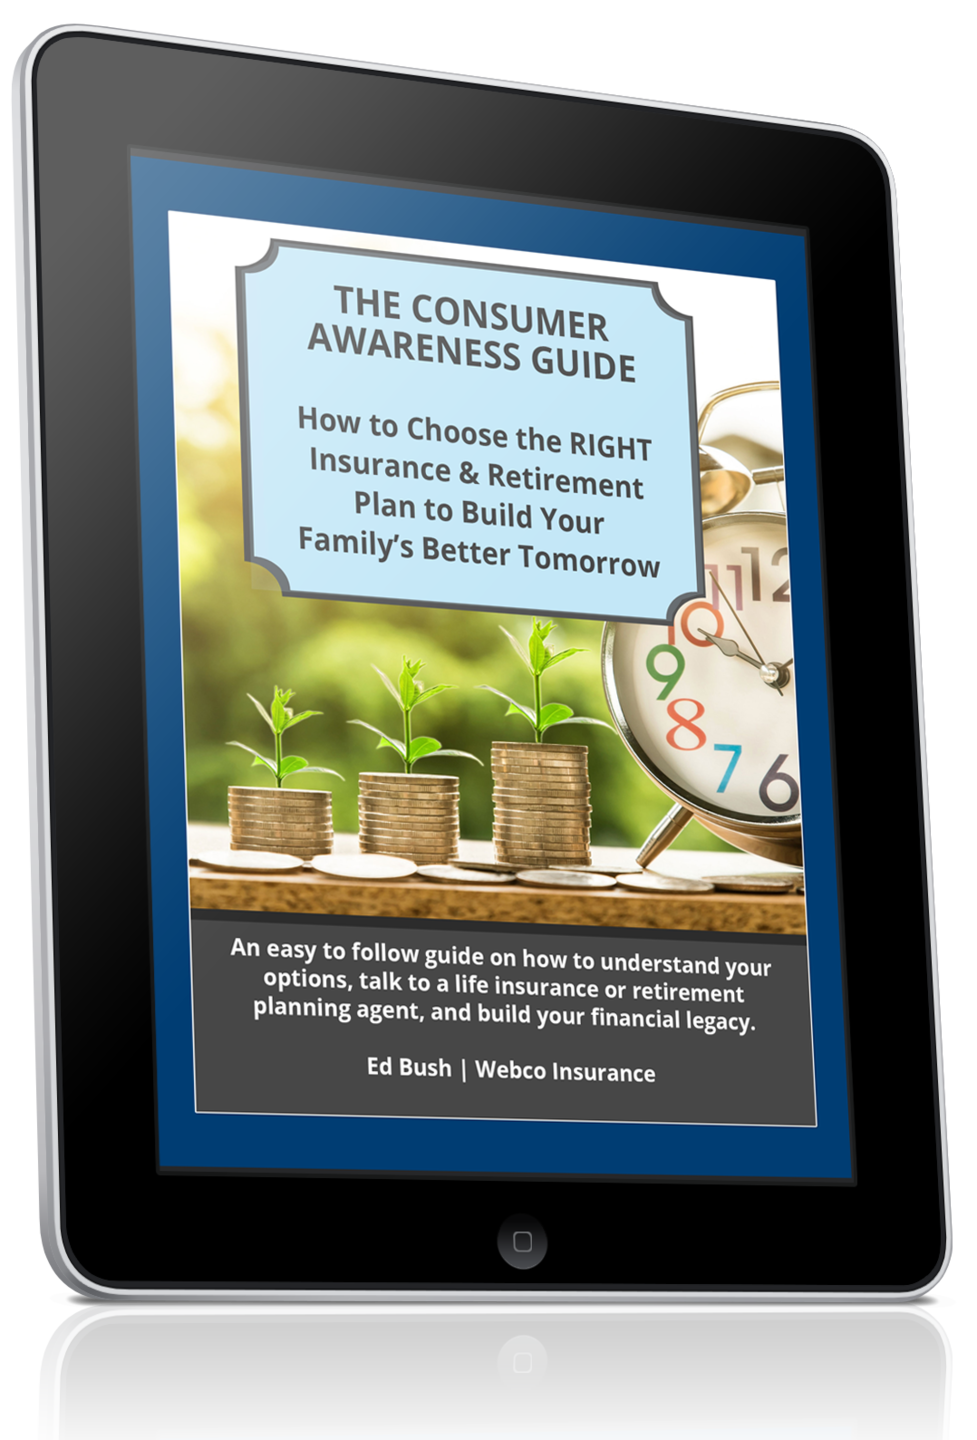 Webco Insurance: The Consumer Awareness Guide to Choosing the RIGHT Insurance & Retirement Plan to Build Your Family's Better Tomorrow